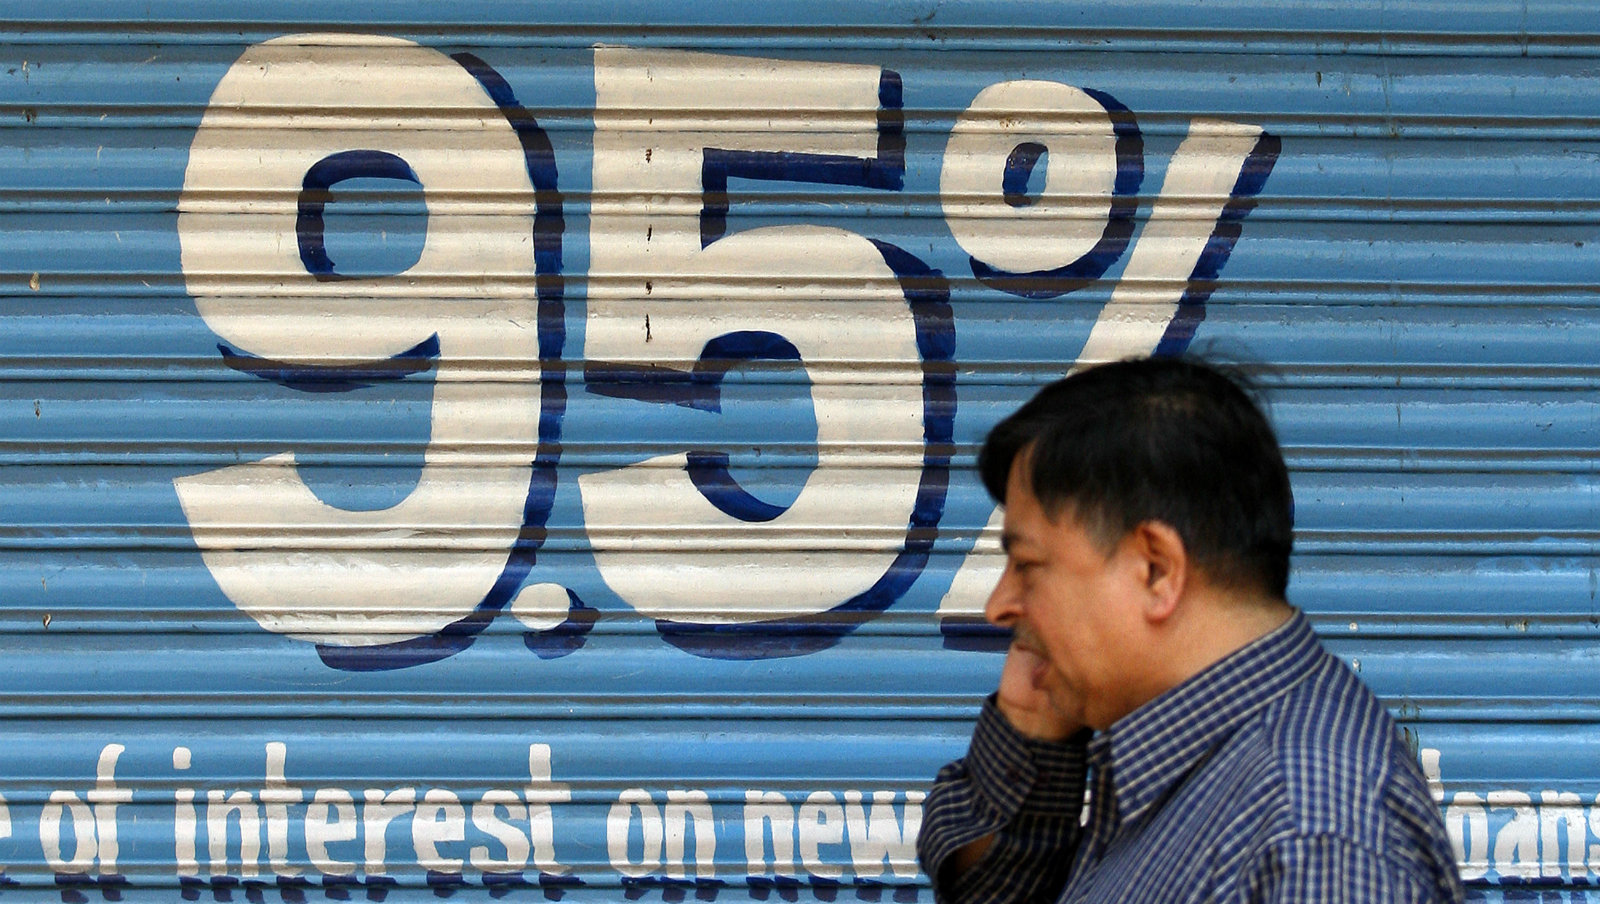 A man walks past a bank advertisement for four wheeler vehicle loans in Mumbai March 22, 2010. The Reserve Bank of India (RBI) on Friday unexpectedly raised interest rates from record-low levels for the first time since it began cutting in 2008, citing intensifying inflationary pressures and a steady economic recovery.